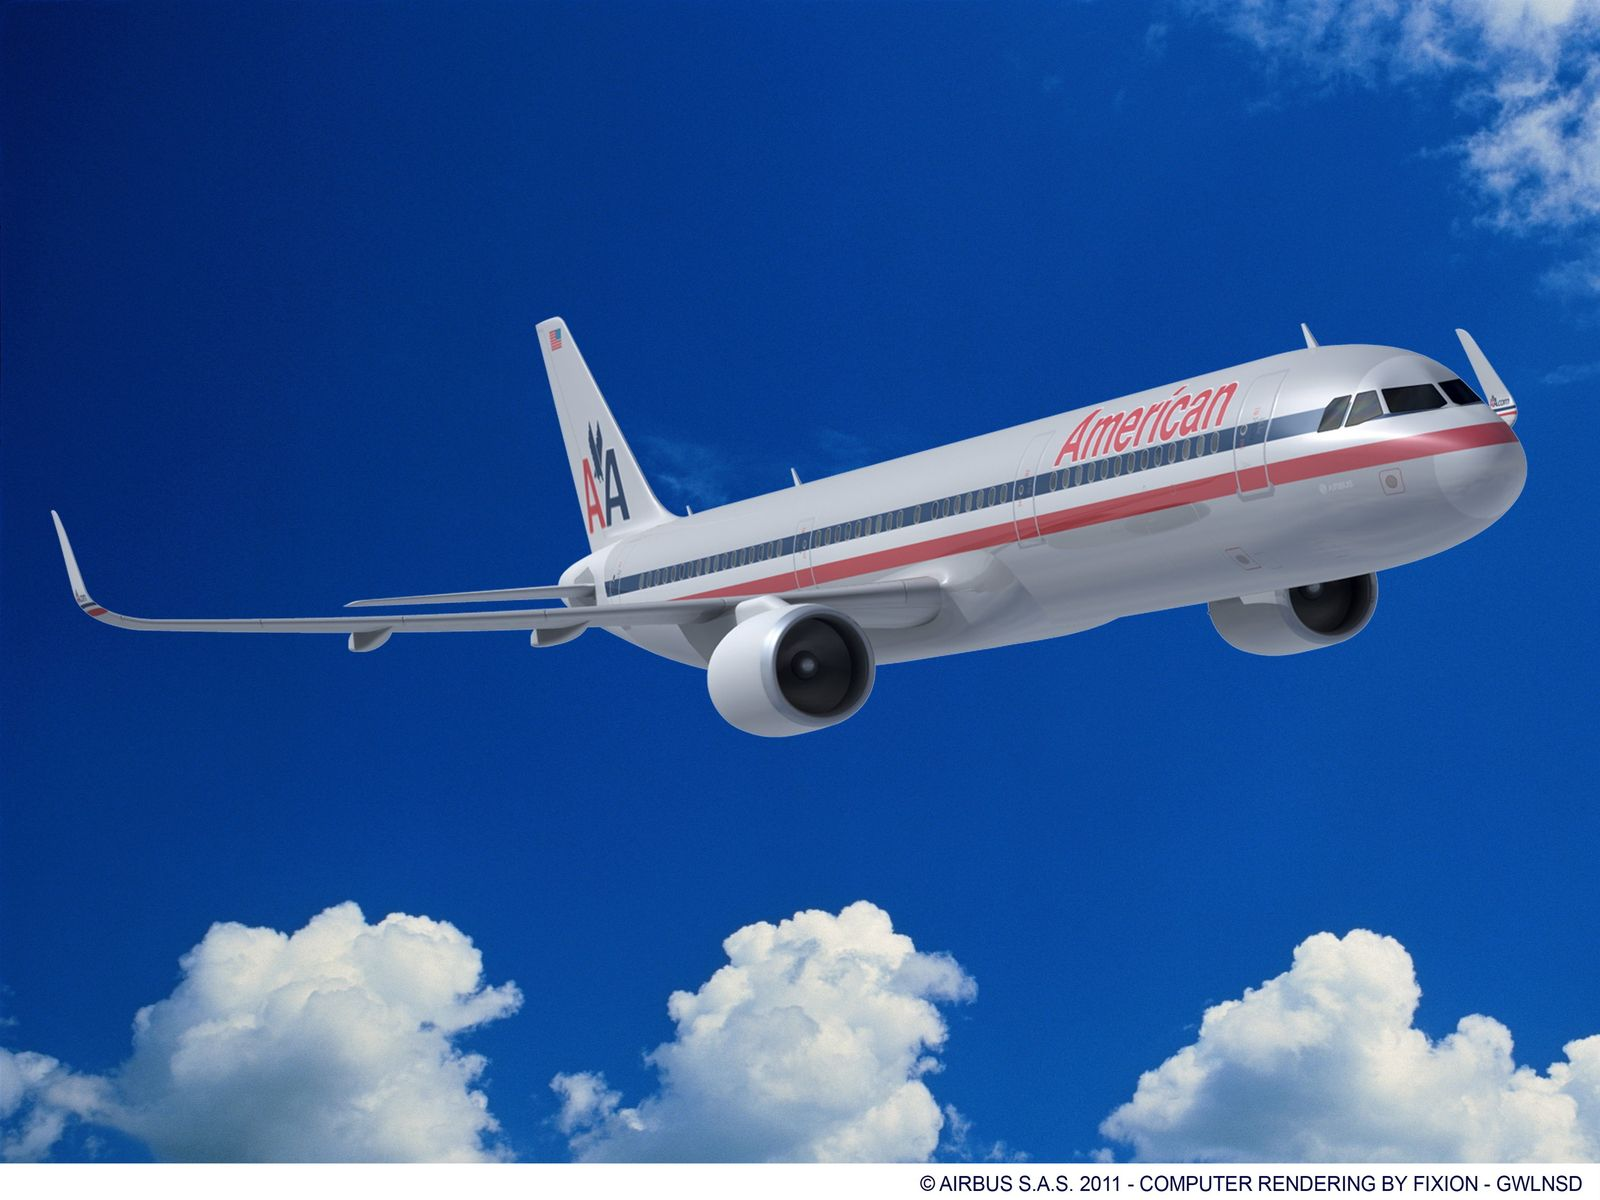 Airbus A320 / American Airline / Rendering